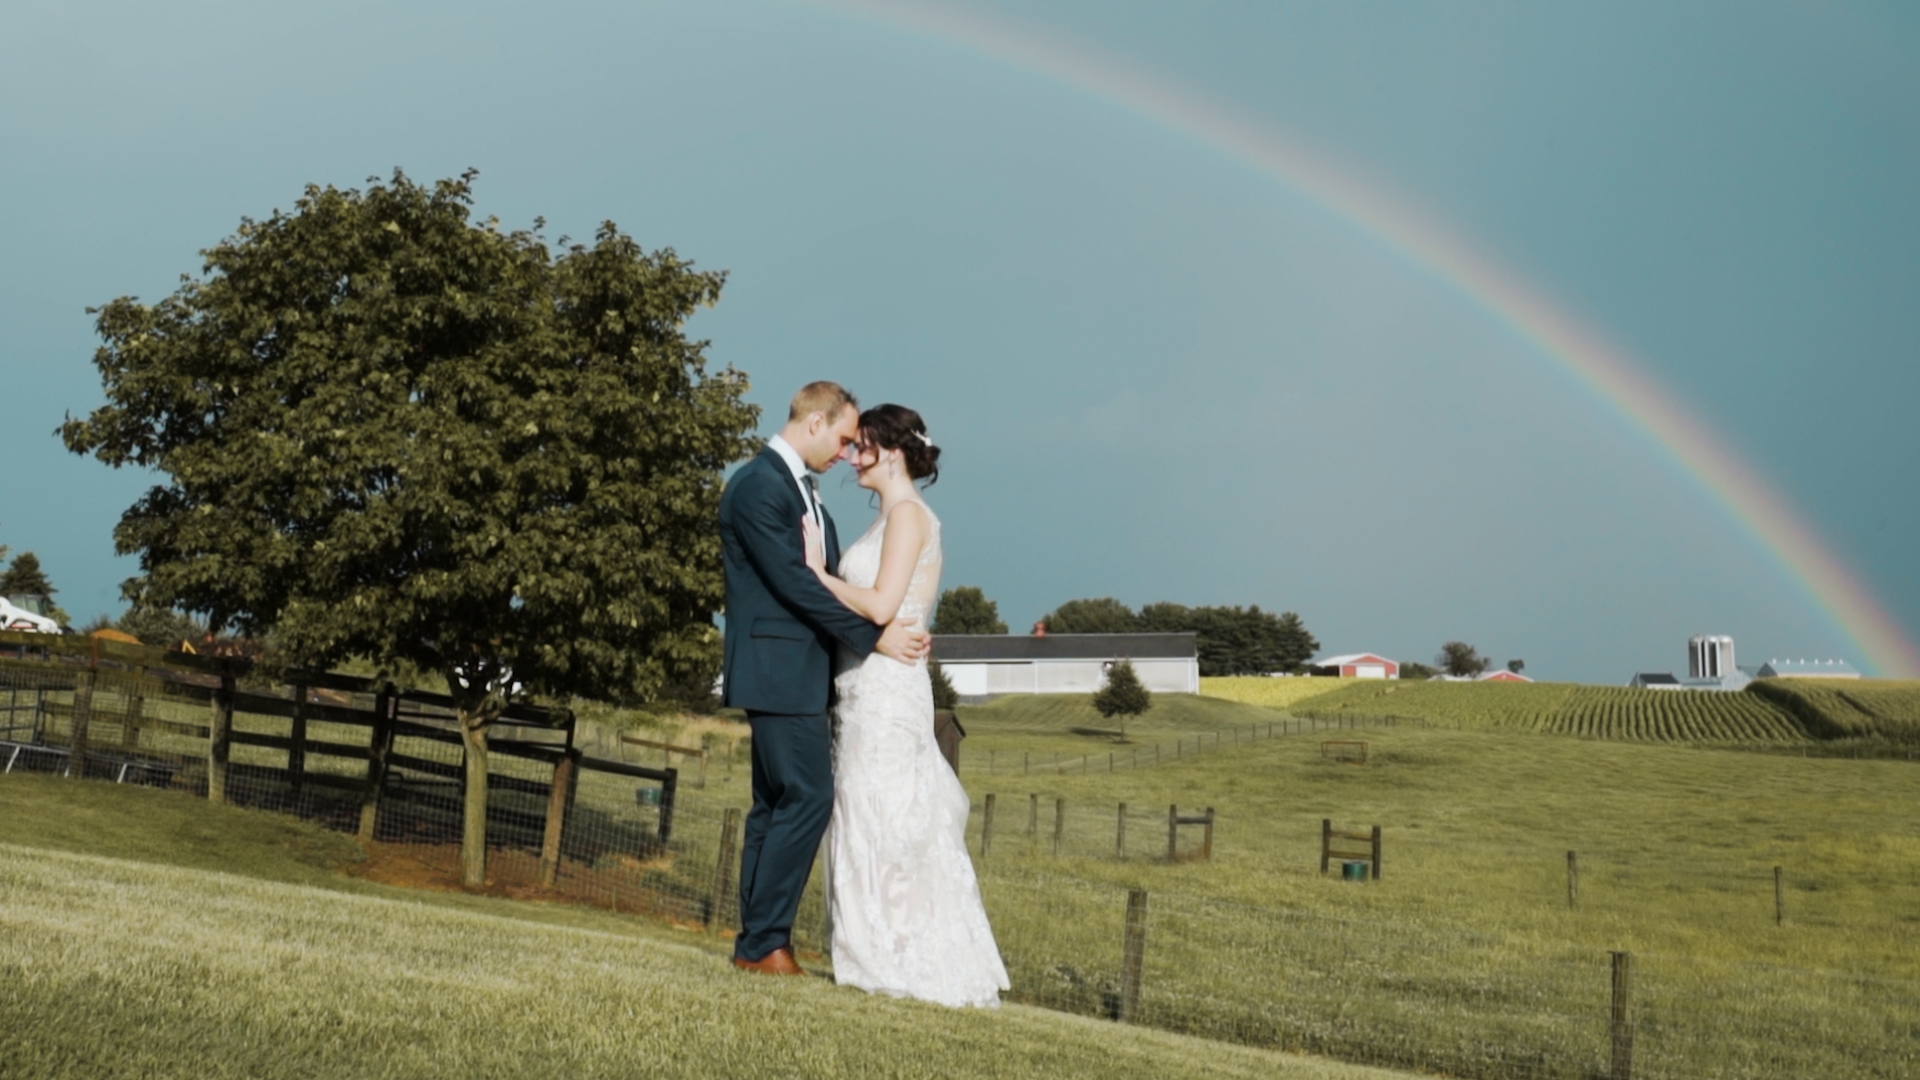 Brittany + Mark | Manheim, Pennsylvania | Lakefield Weddings